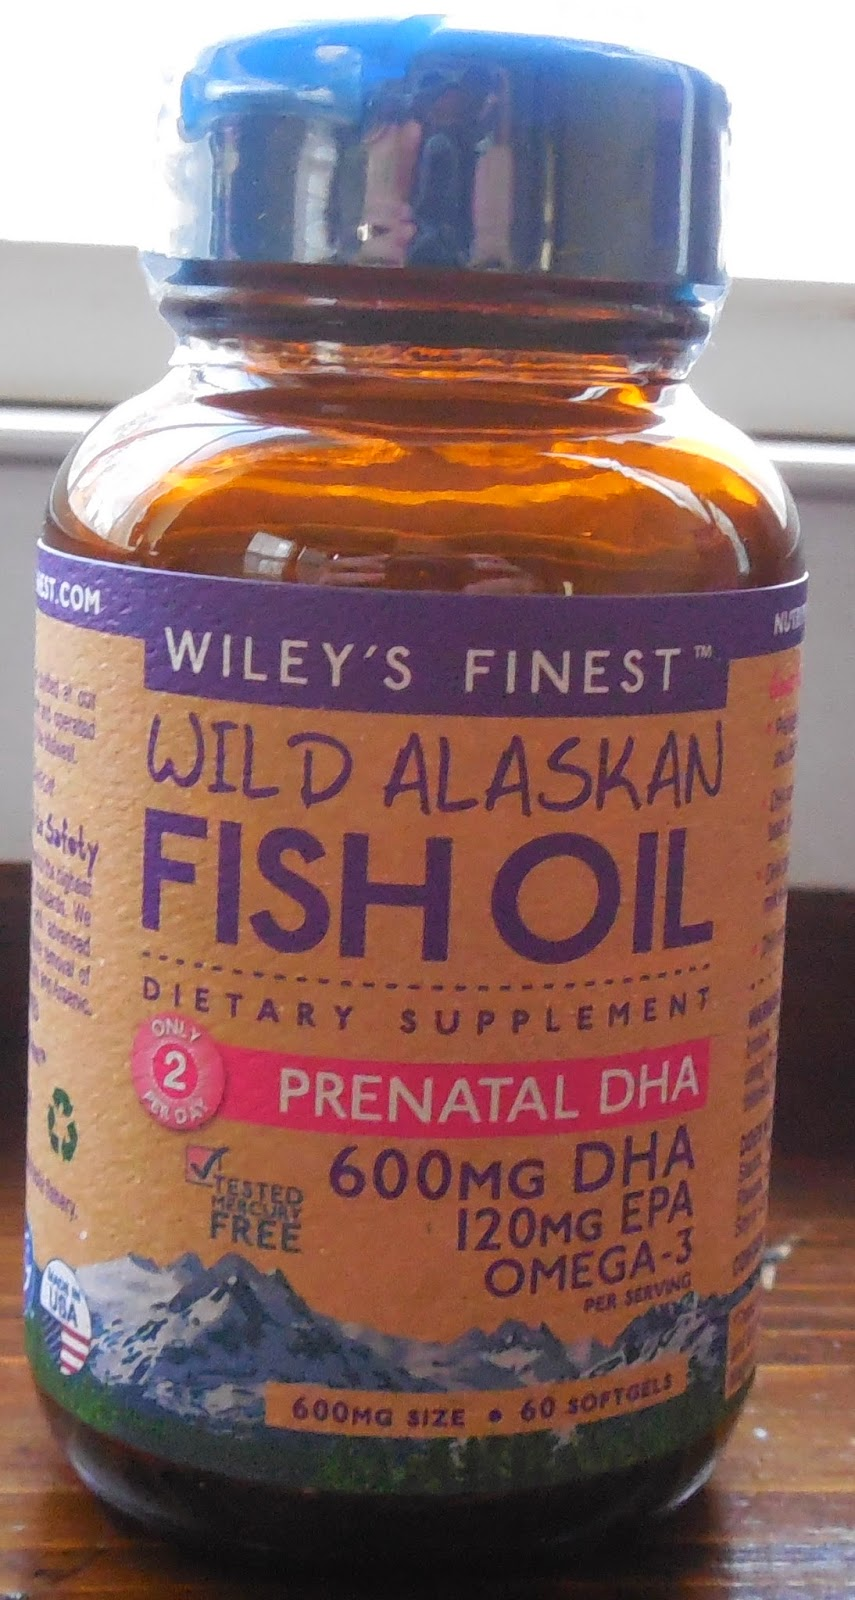 Wiley's Finest Fish Oil